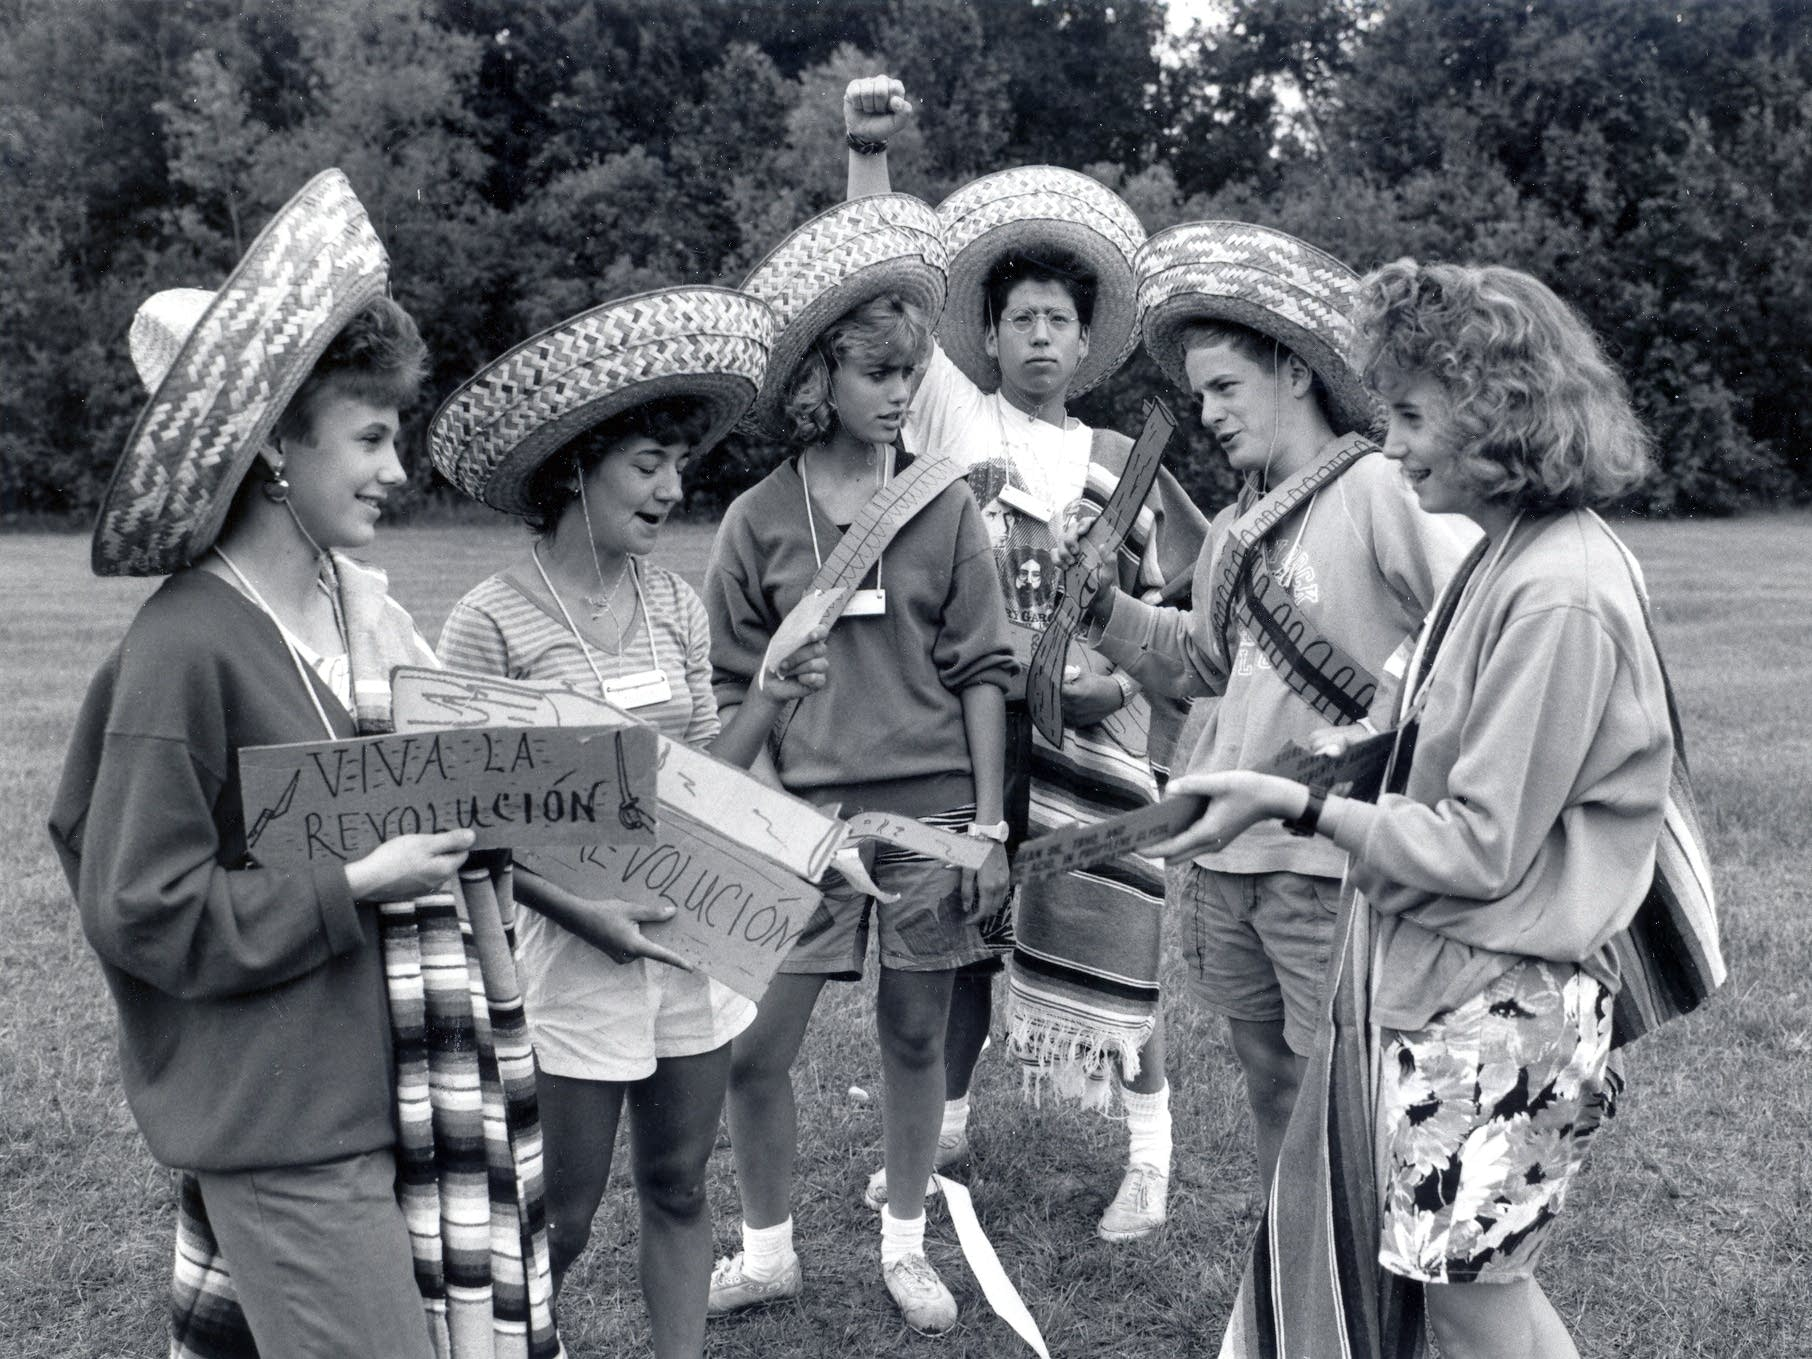 Spanish villagers re-enact the Mexican revolution.